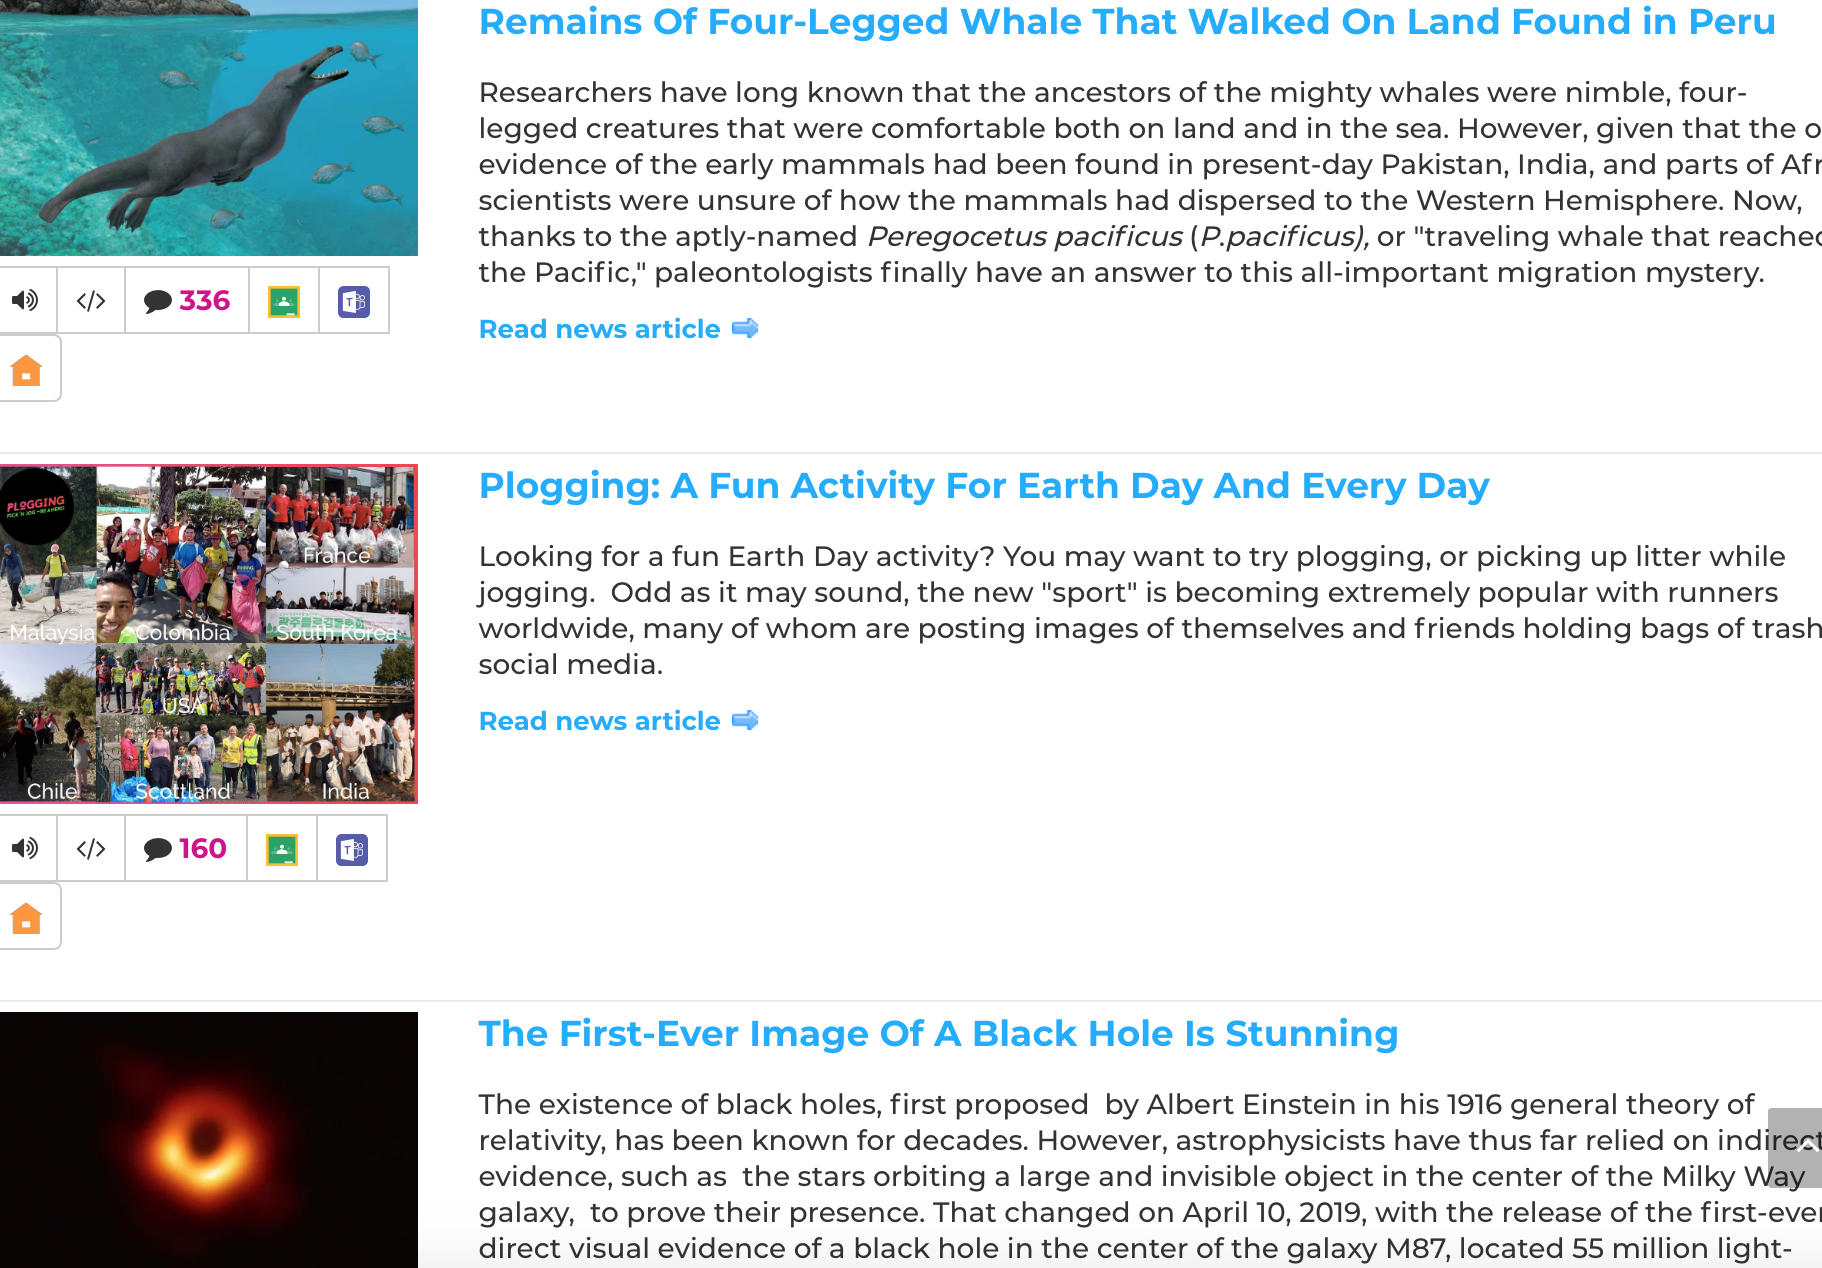 DOGO News has short format articles for kids on current